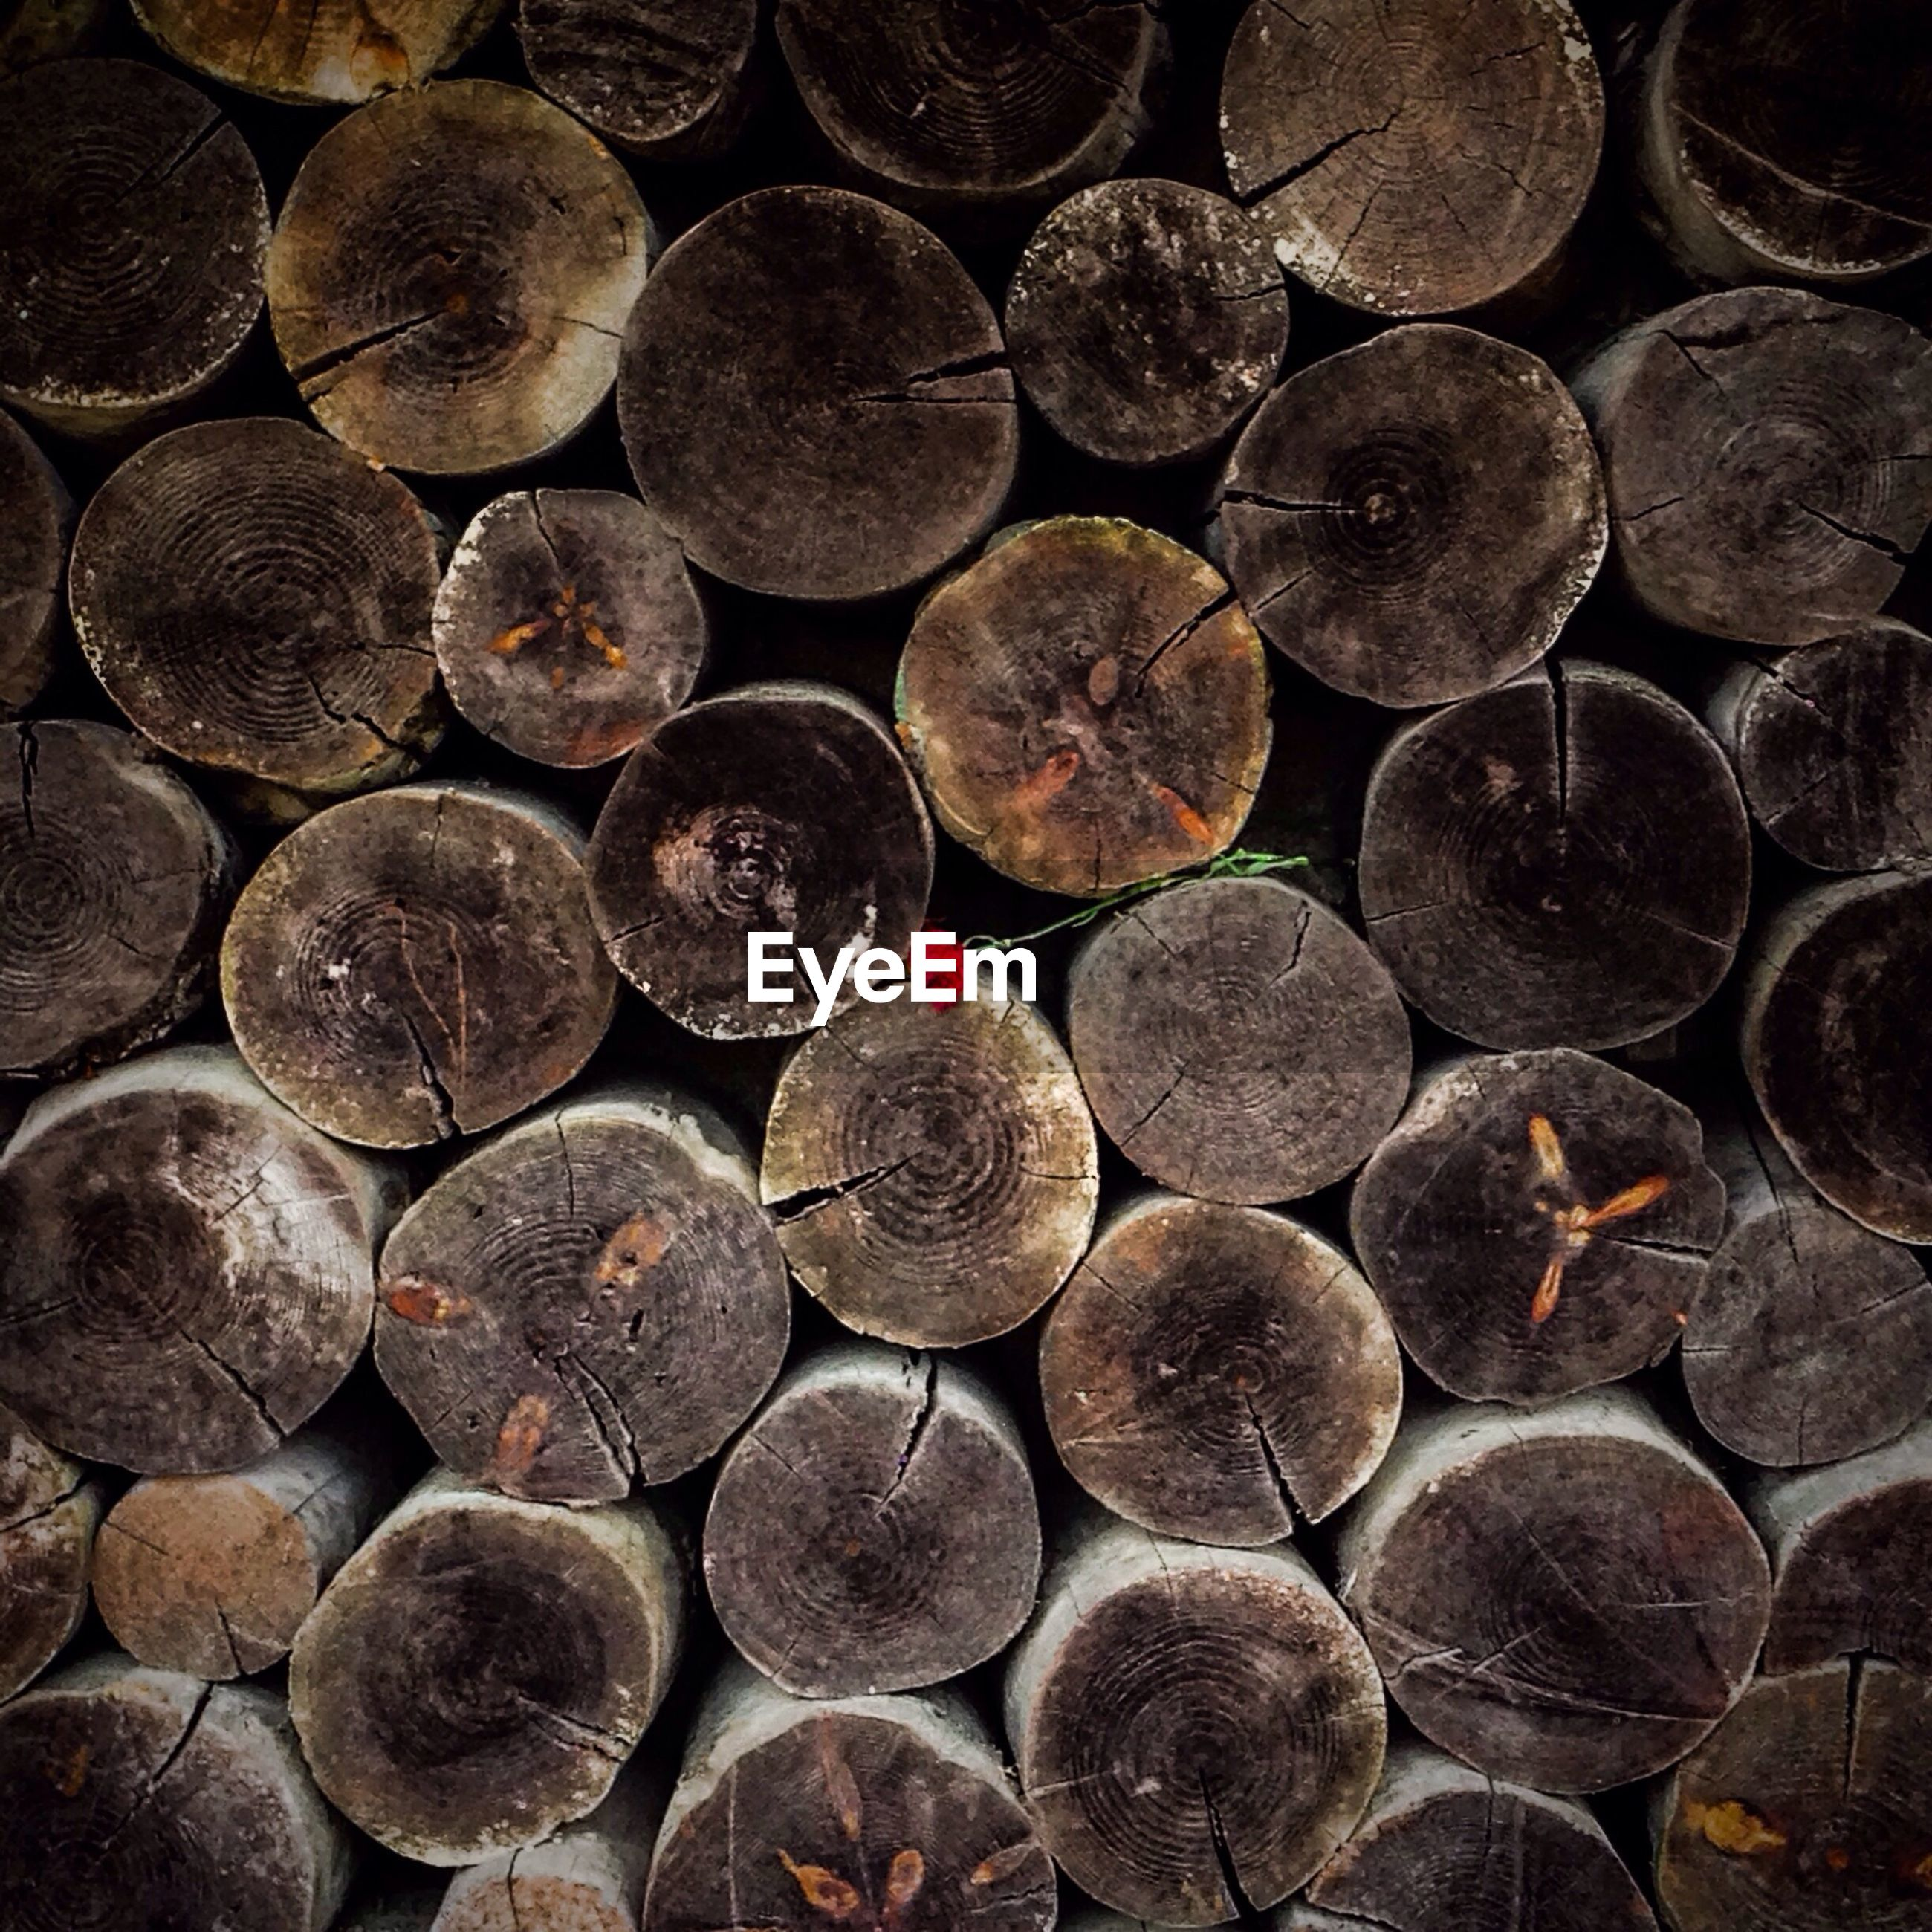 large group of objects, abundance, stack, backgrounds, firewood, full frame, stone - object, lumber industry, deforestation, log, pebble, heap, timber, textured, wood - material, arrangement, outdoors, no people, circle, pattern